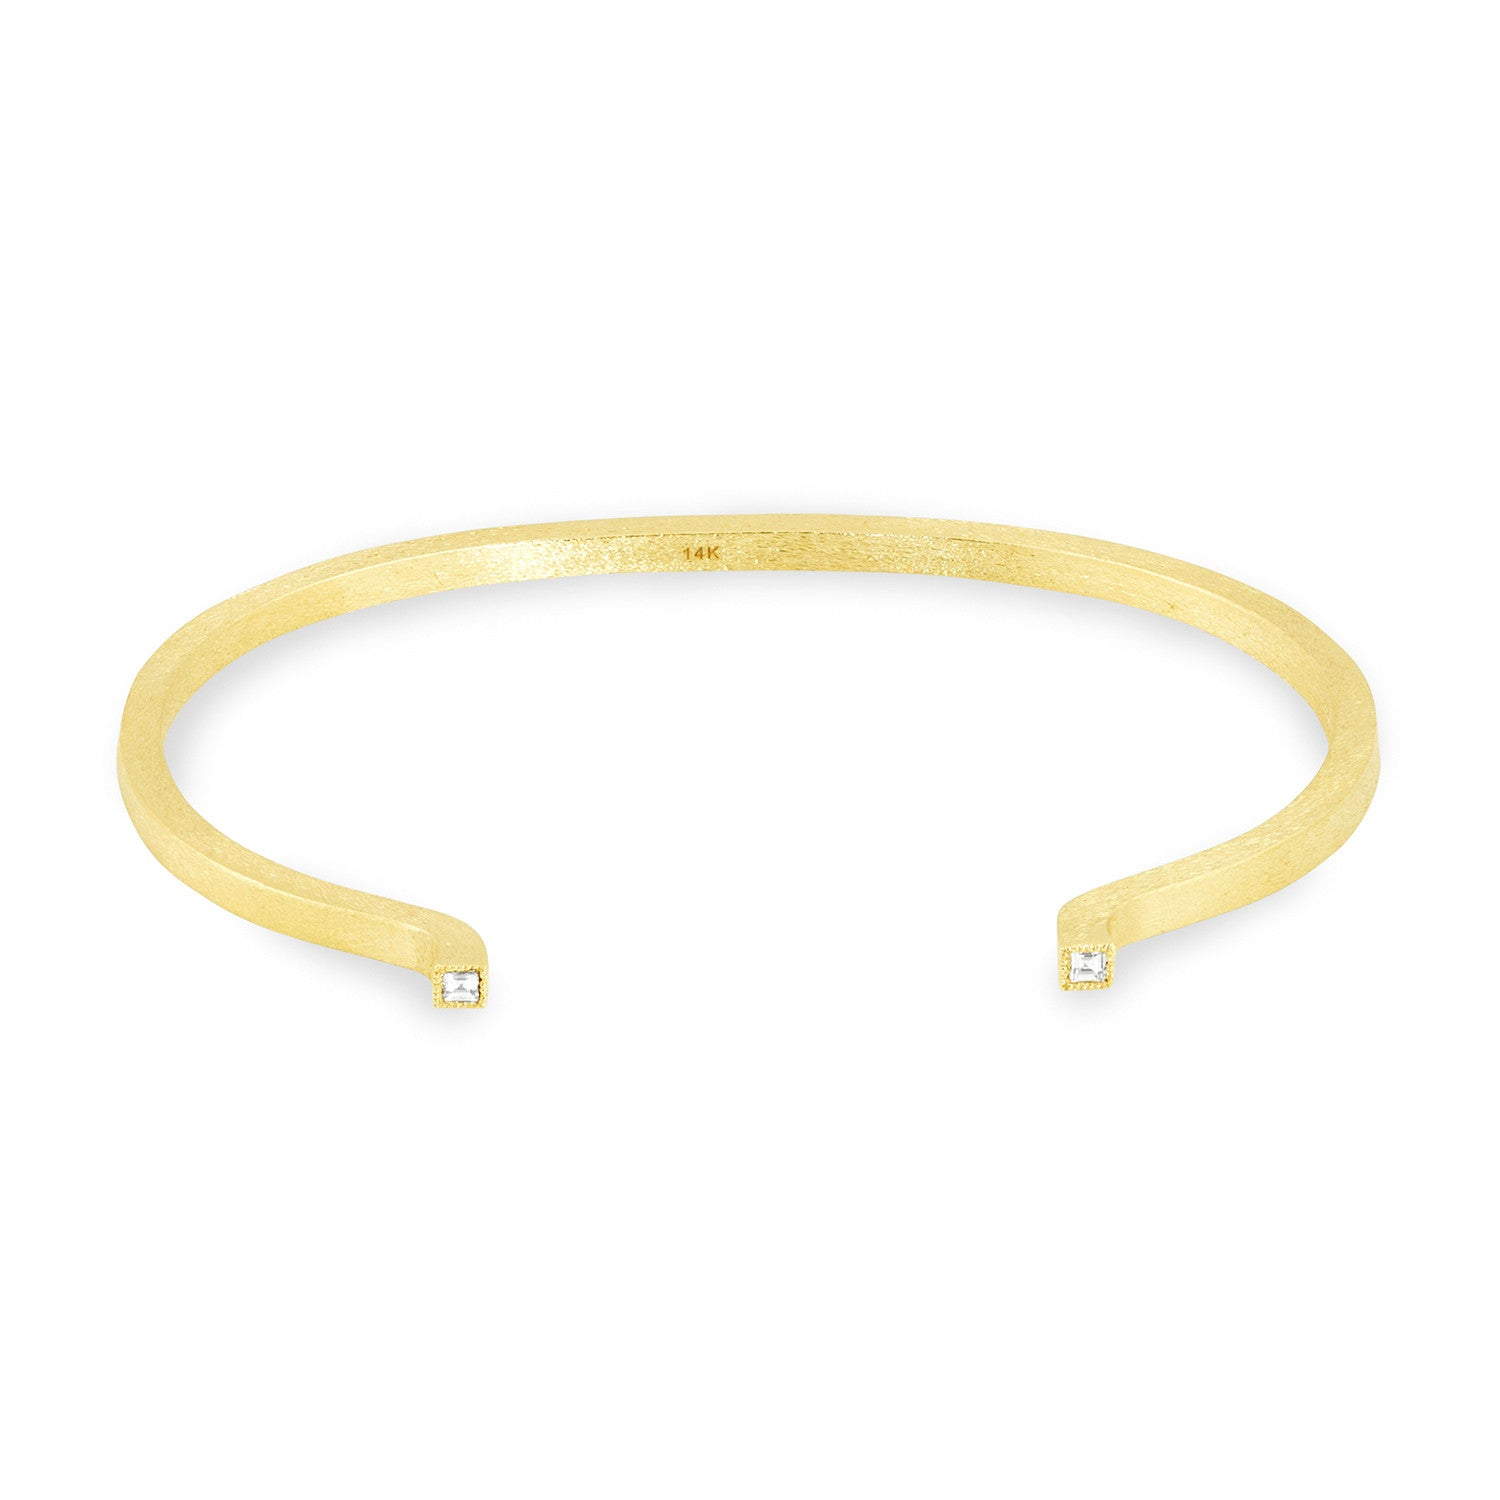 Small Square Solid Tube Cuff, Jewelry - Katherine & Josephine